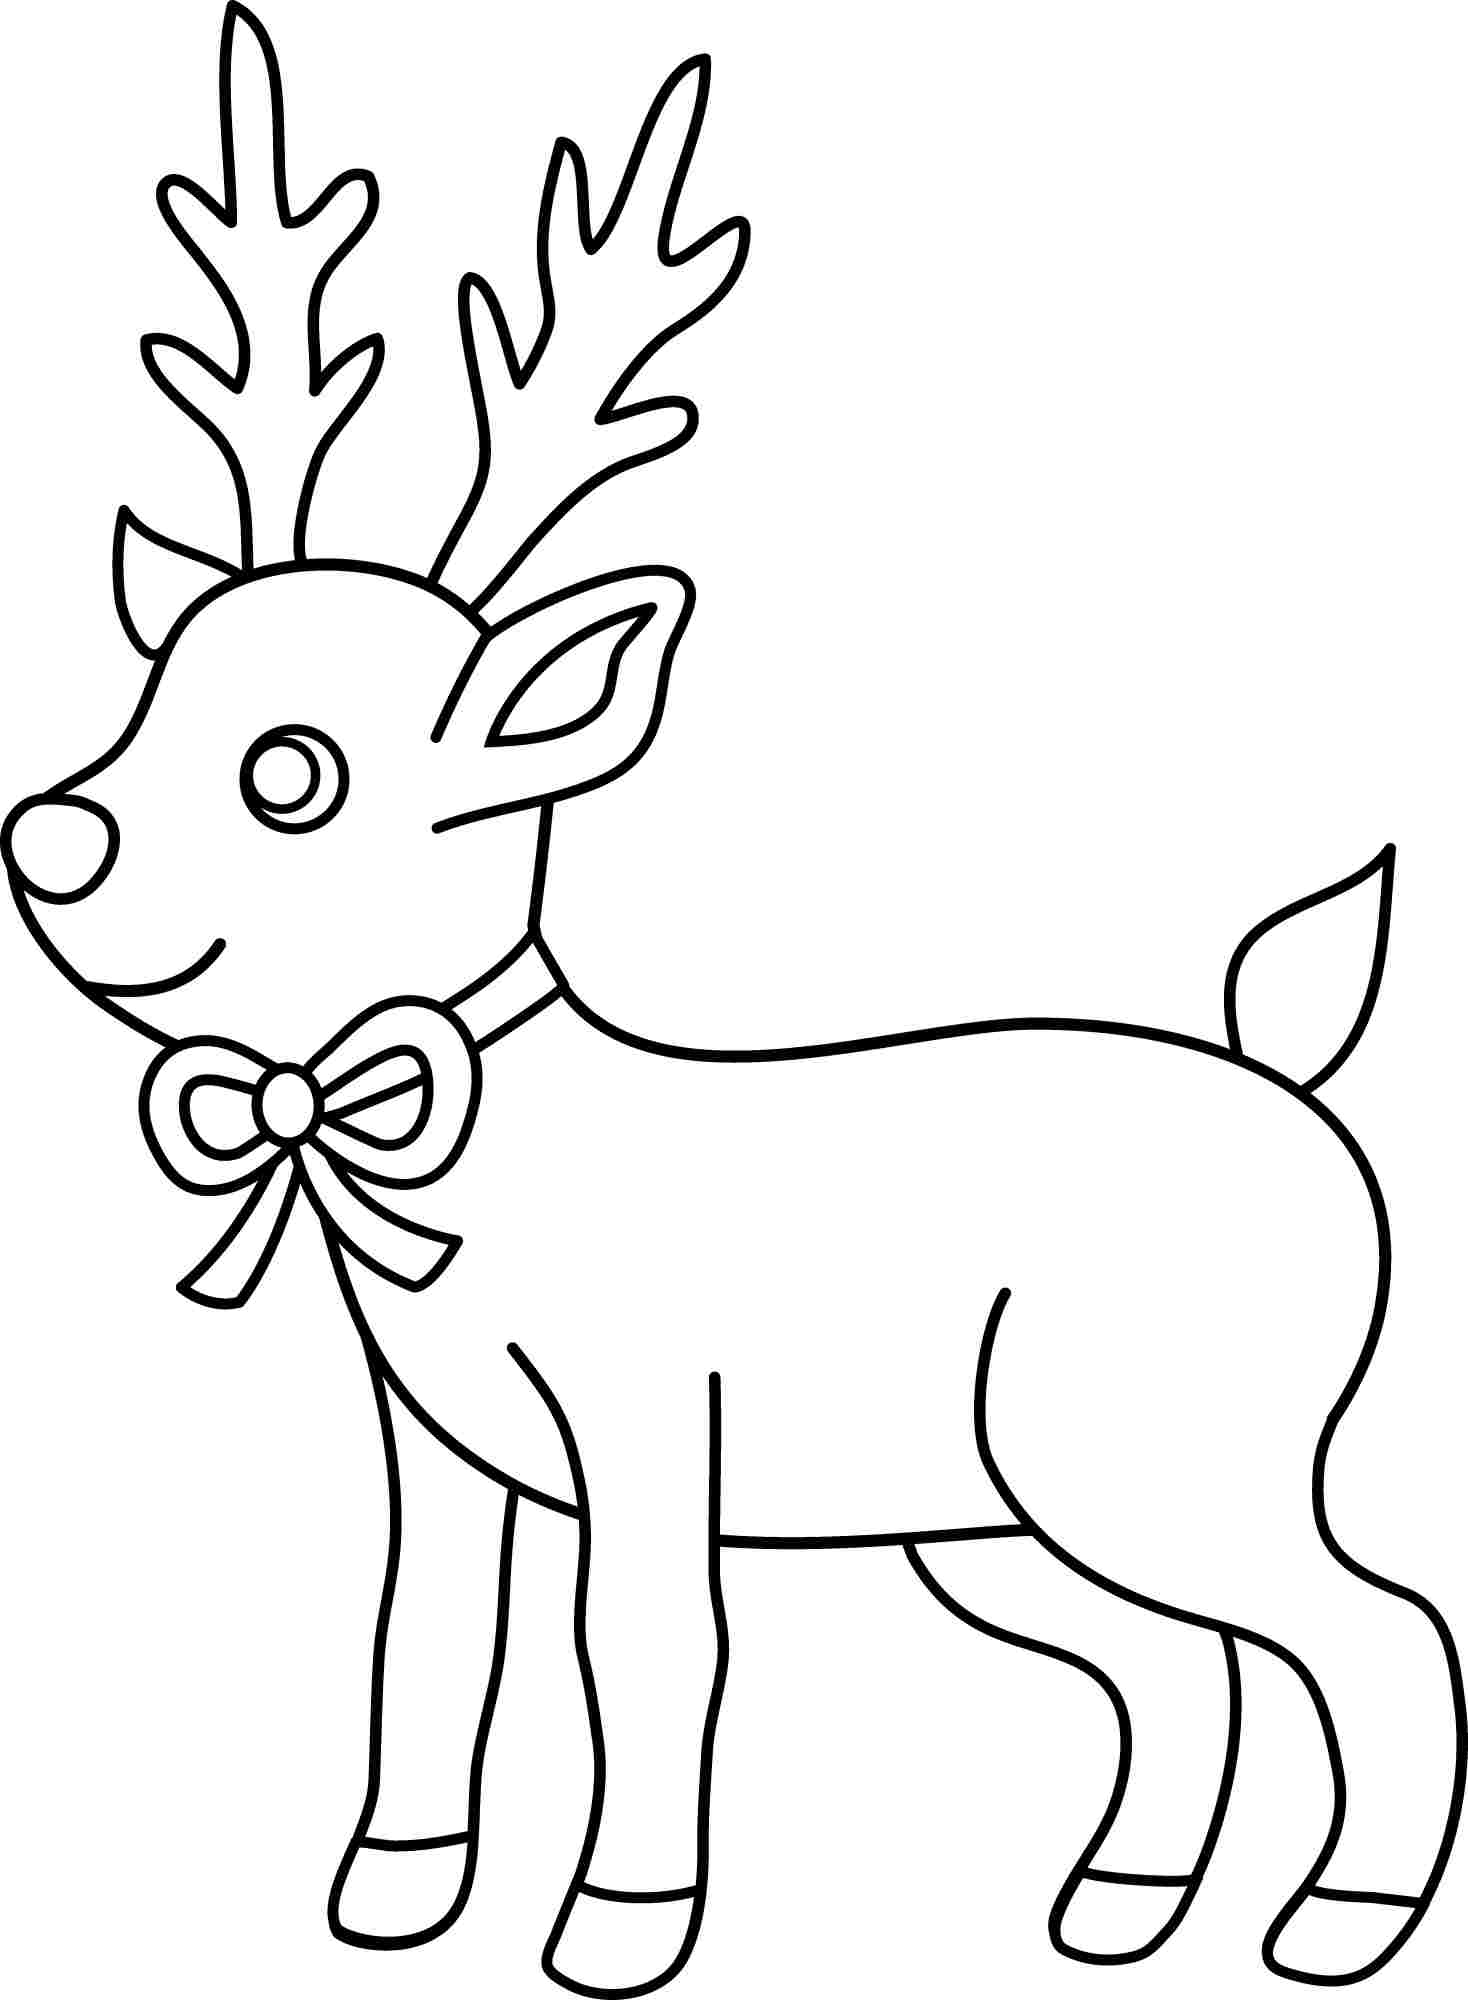 Reindeer clipart easy. Coloring pages bgcentrum